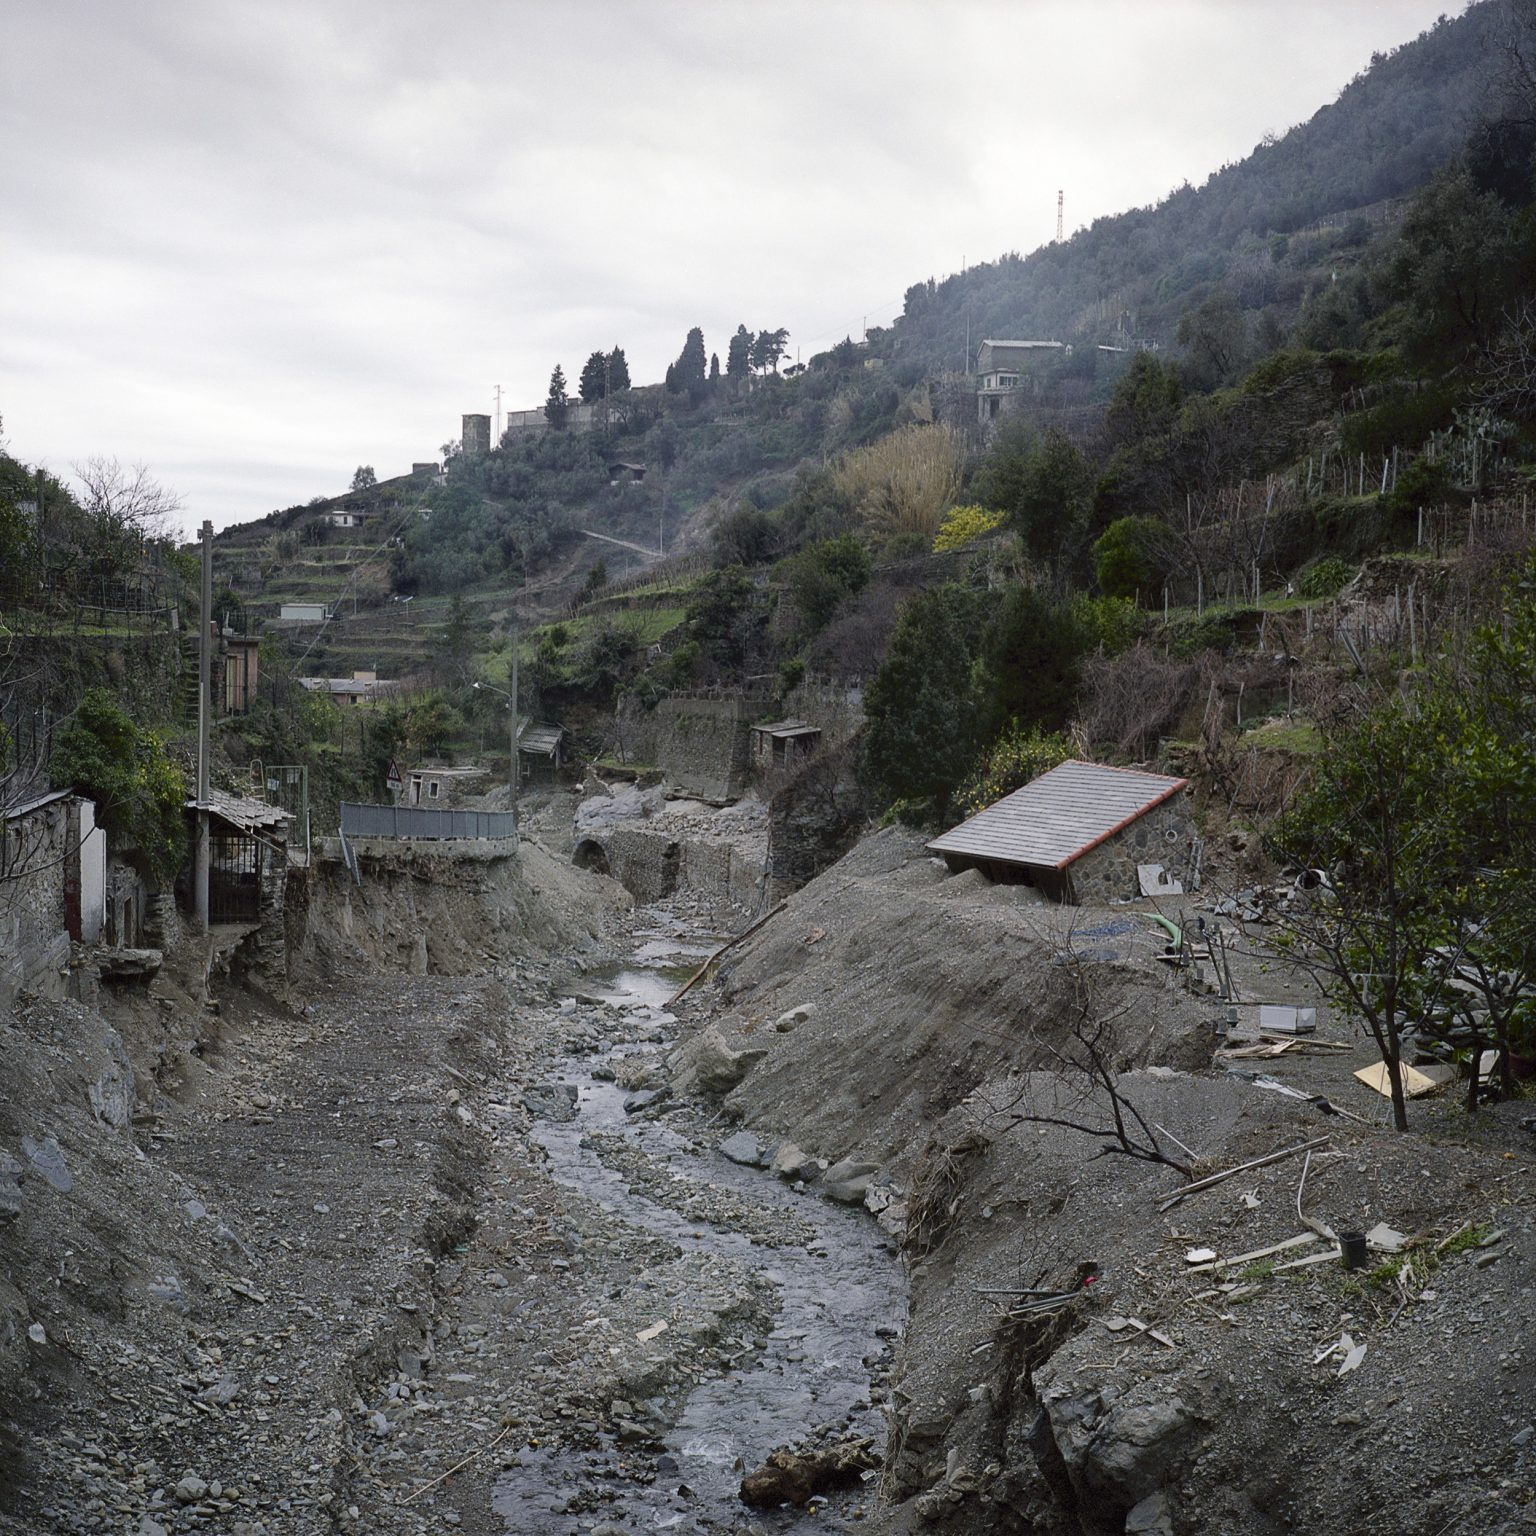 Vernazza, January 2012. The upper part of town severely damaged by the flood of October 2011.